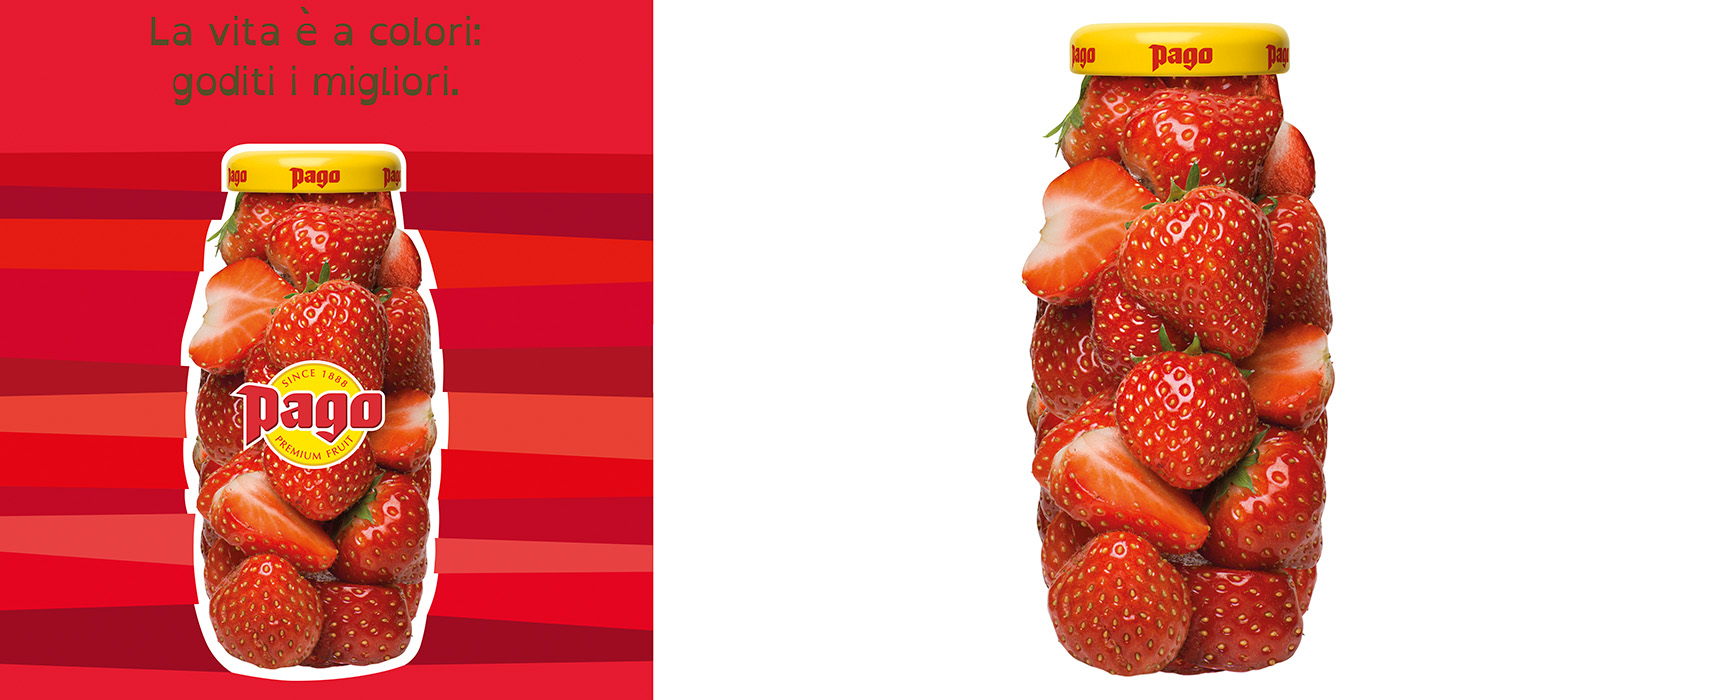 Pago_Ad_True_Colours_Fragola.indd